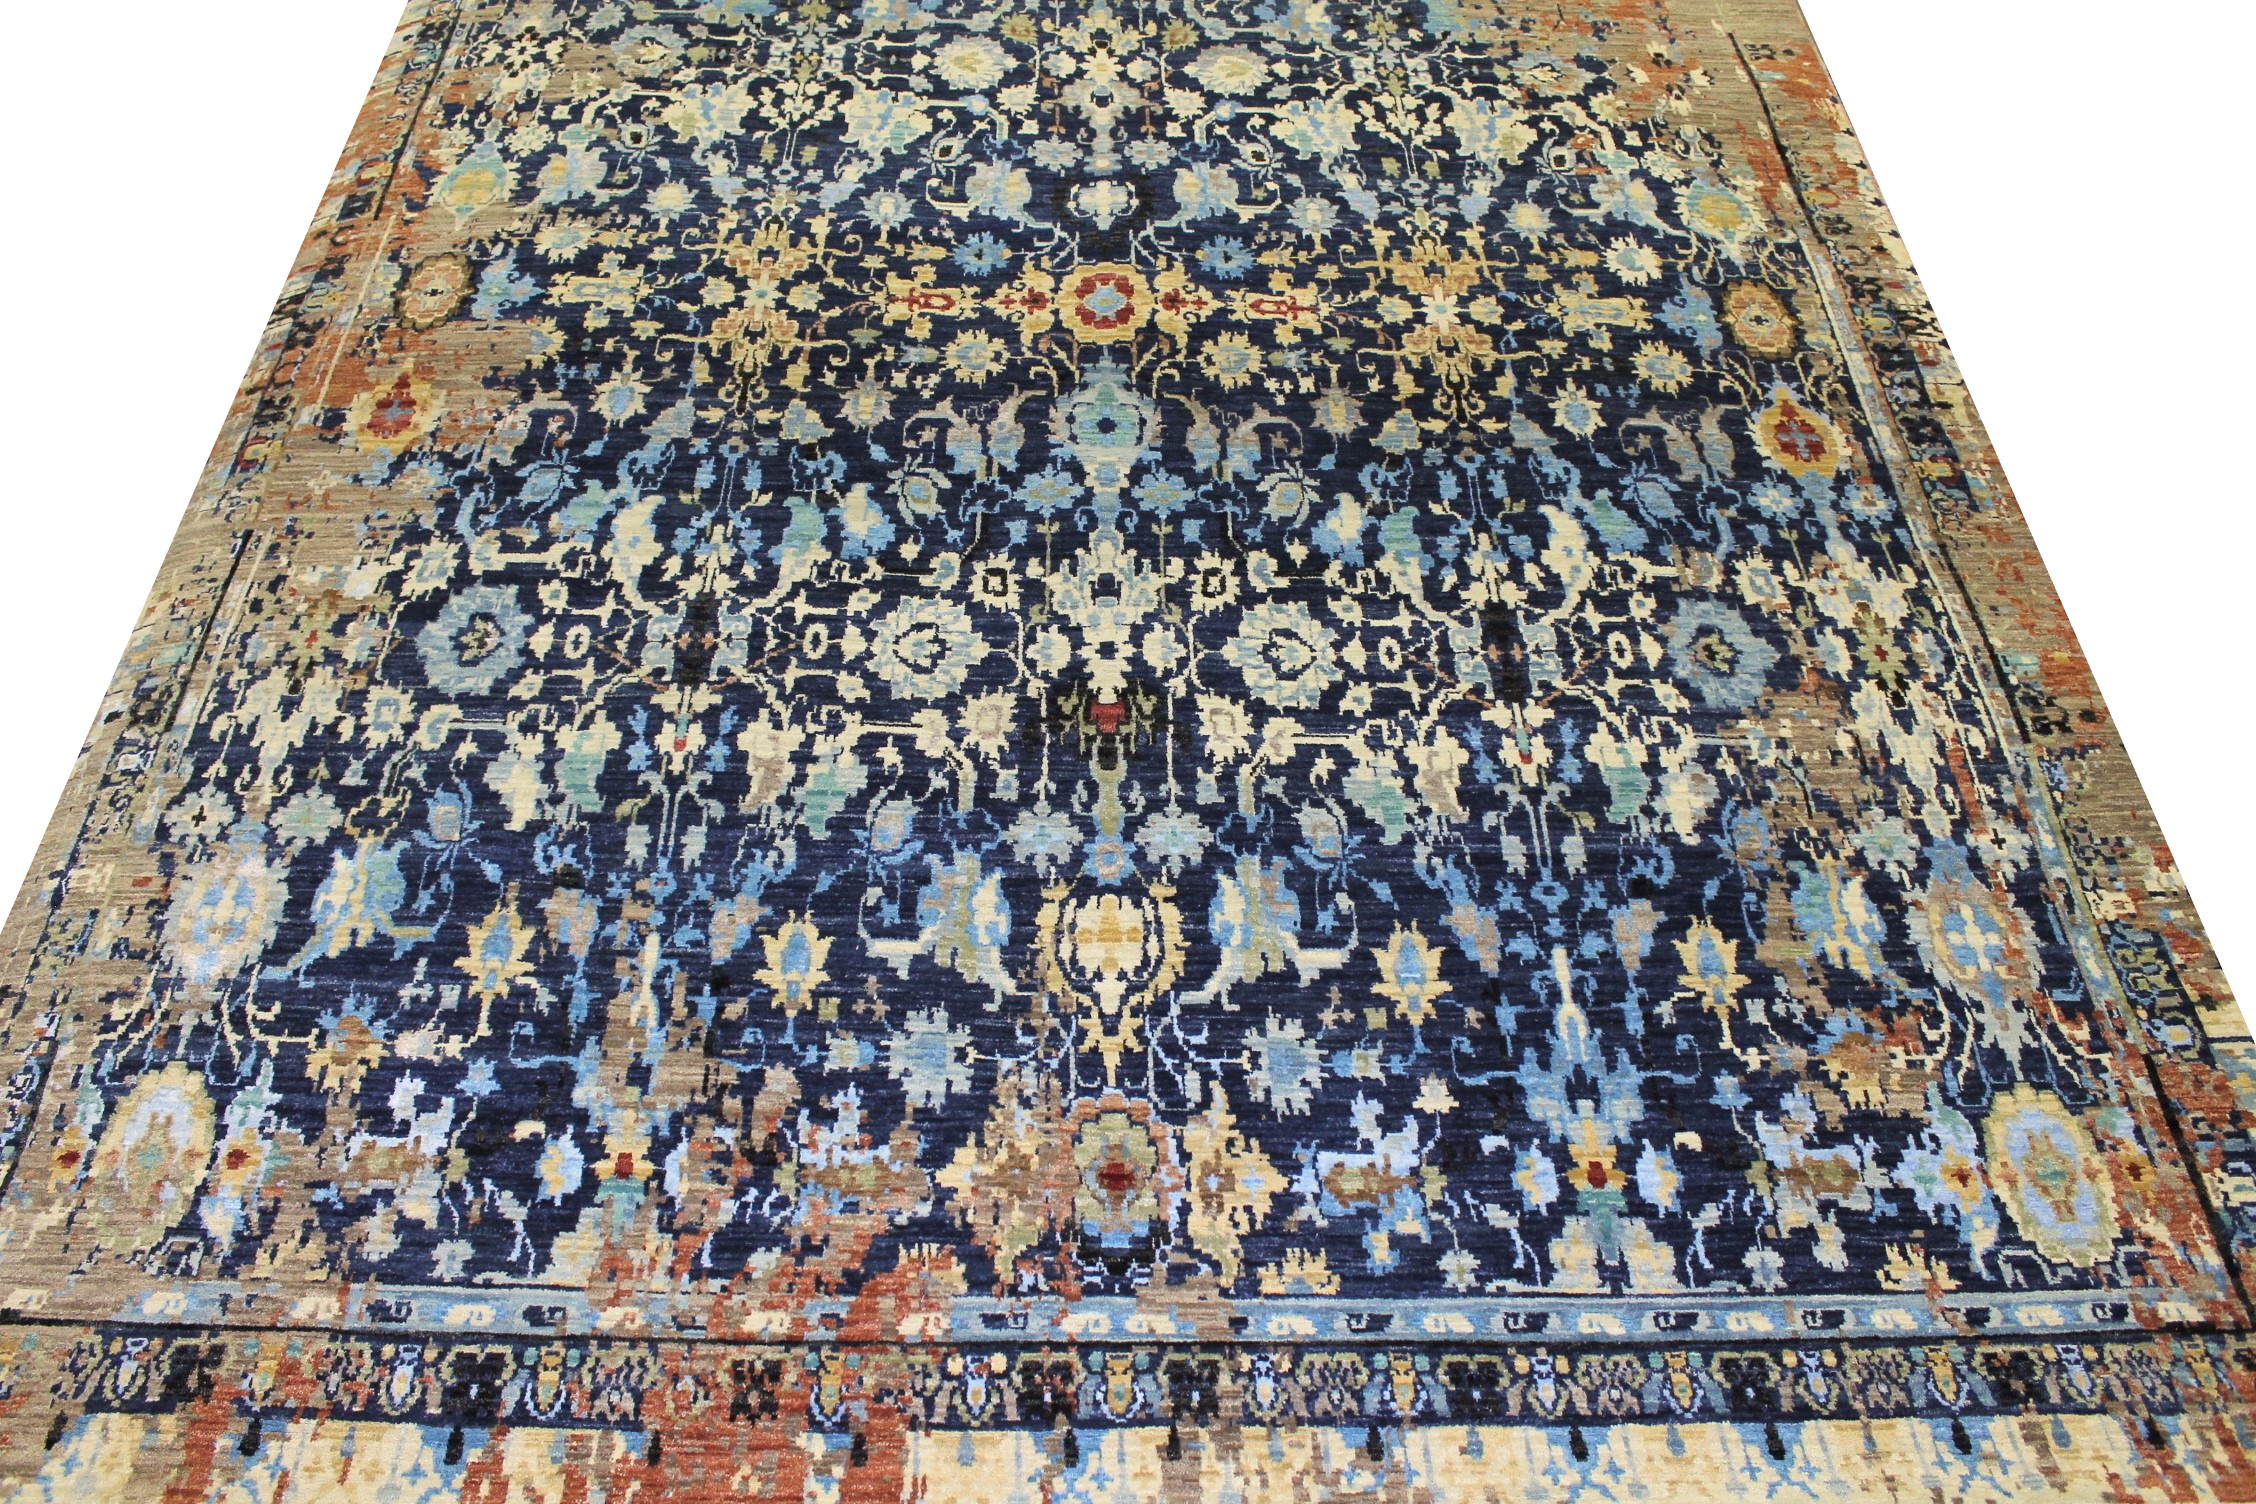 9x12 Contemporary Hand Knotted Wool Area Rug - MR022154